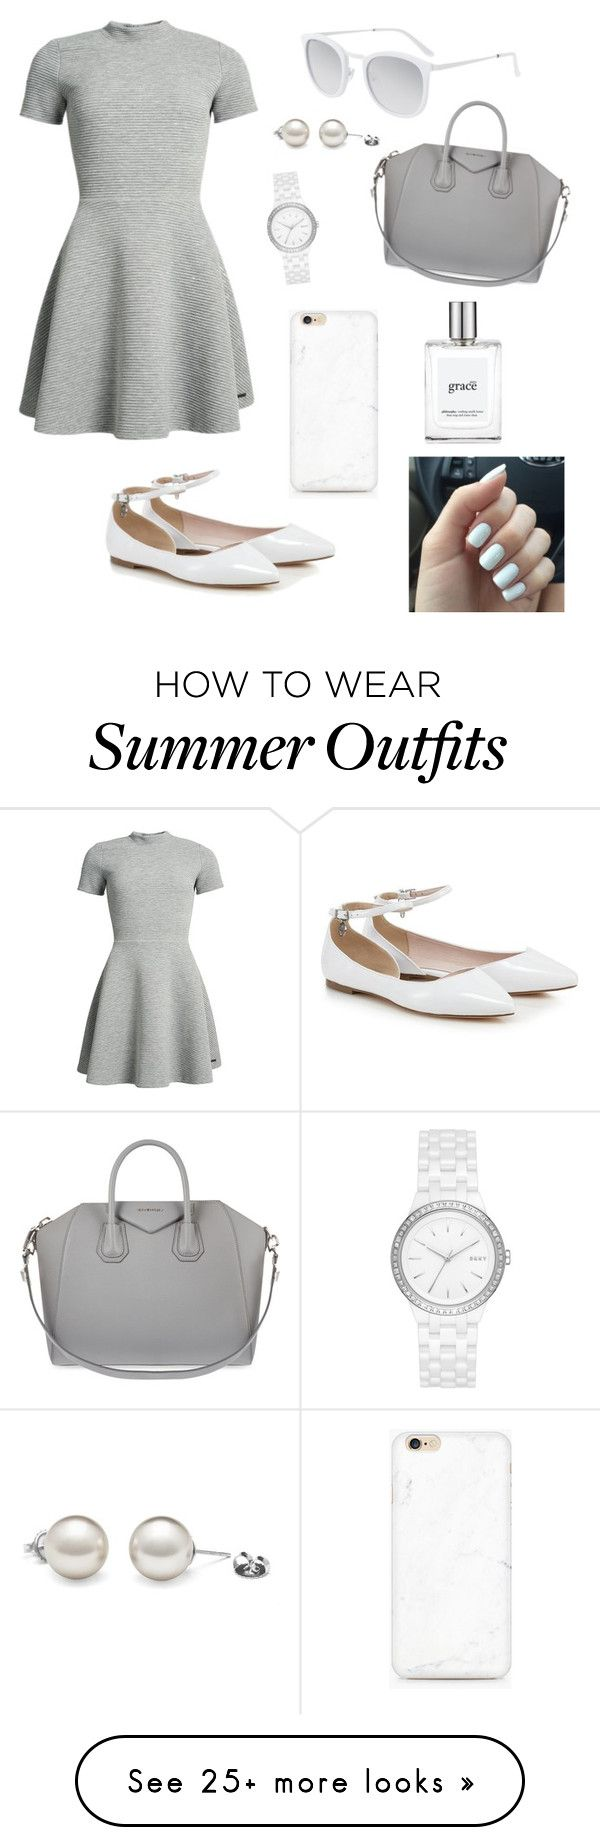 """""""Fancy outfit"""" by cheleniak on Polyvore featuring Superdry, Givenchy, DKNY, philosophy and Smoke x Mirrors"""